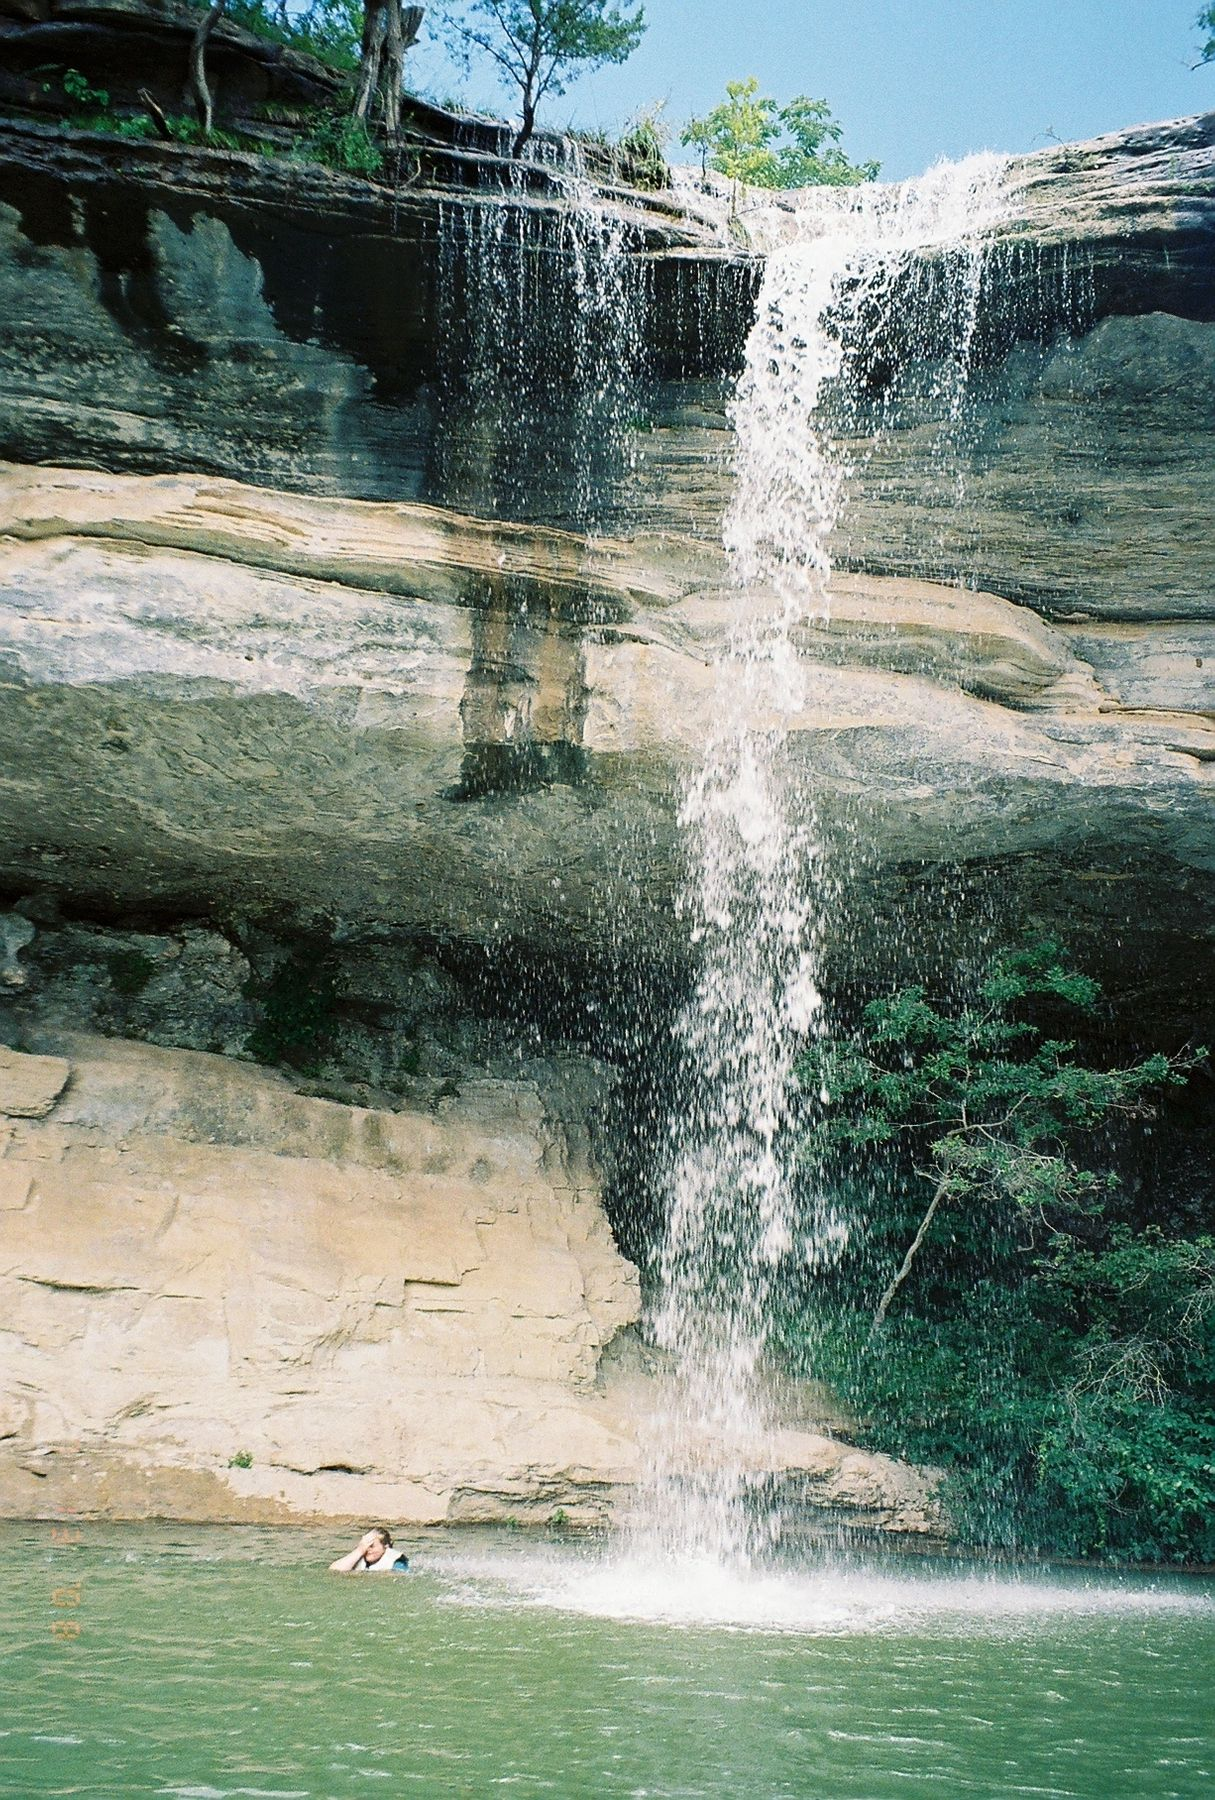 Beaver Lake Arkansas. I know where that waterfall is! Been to it.